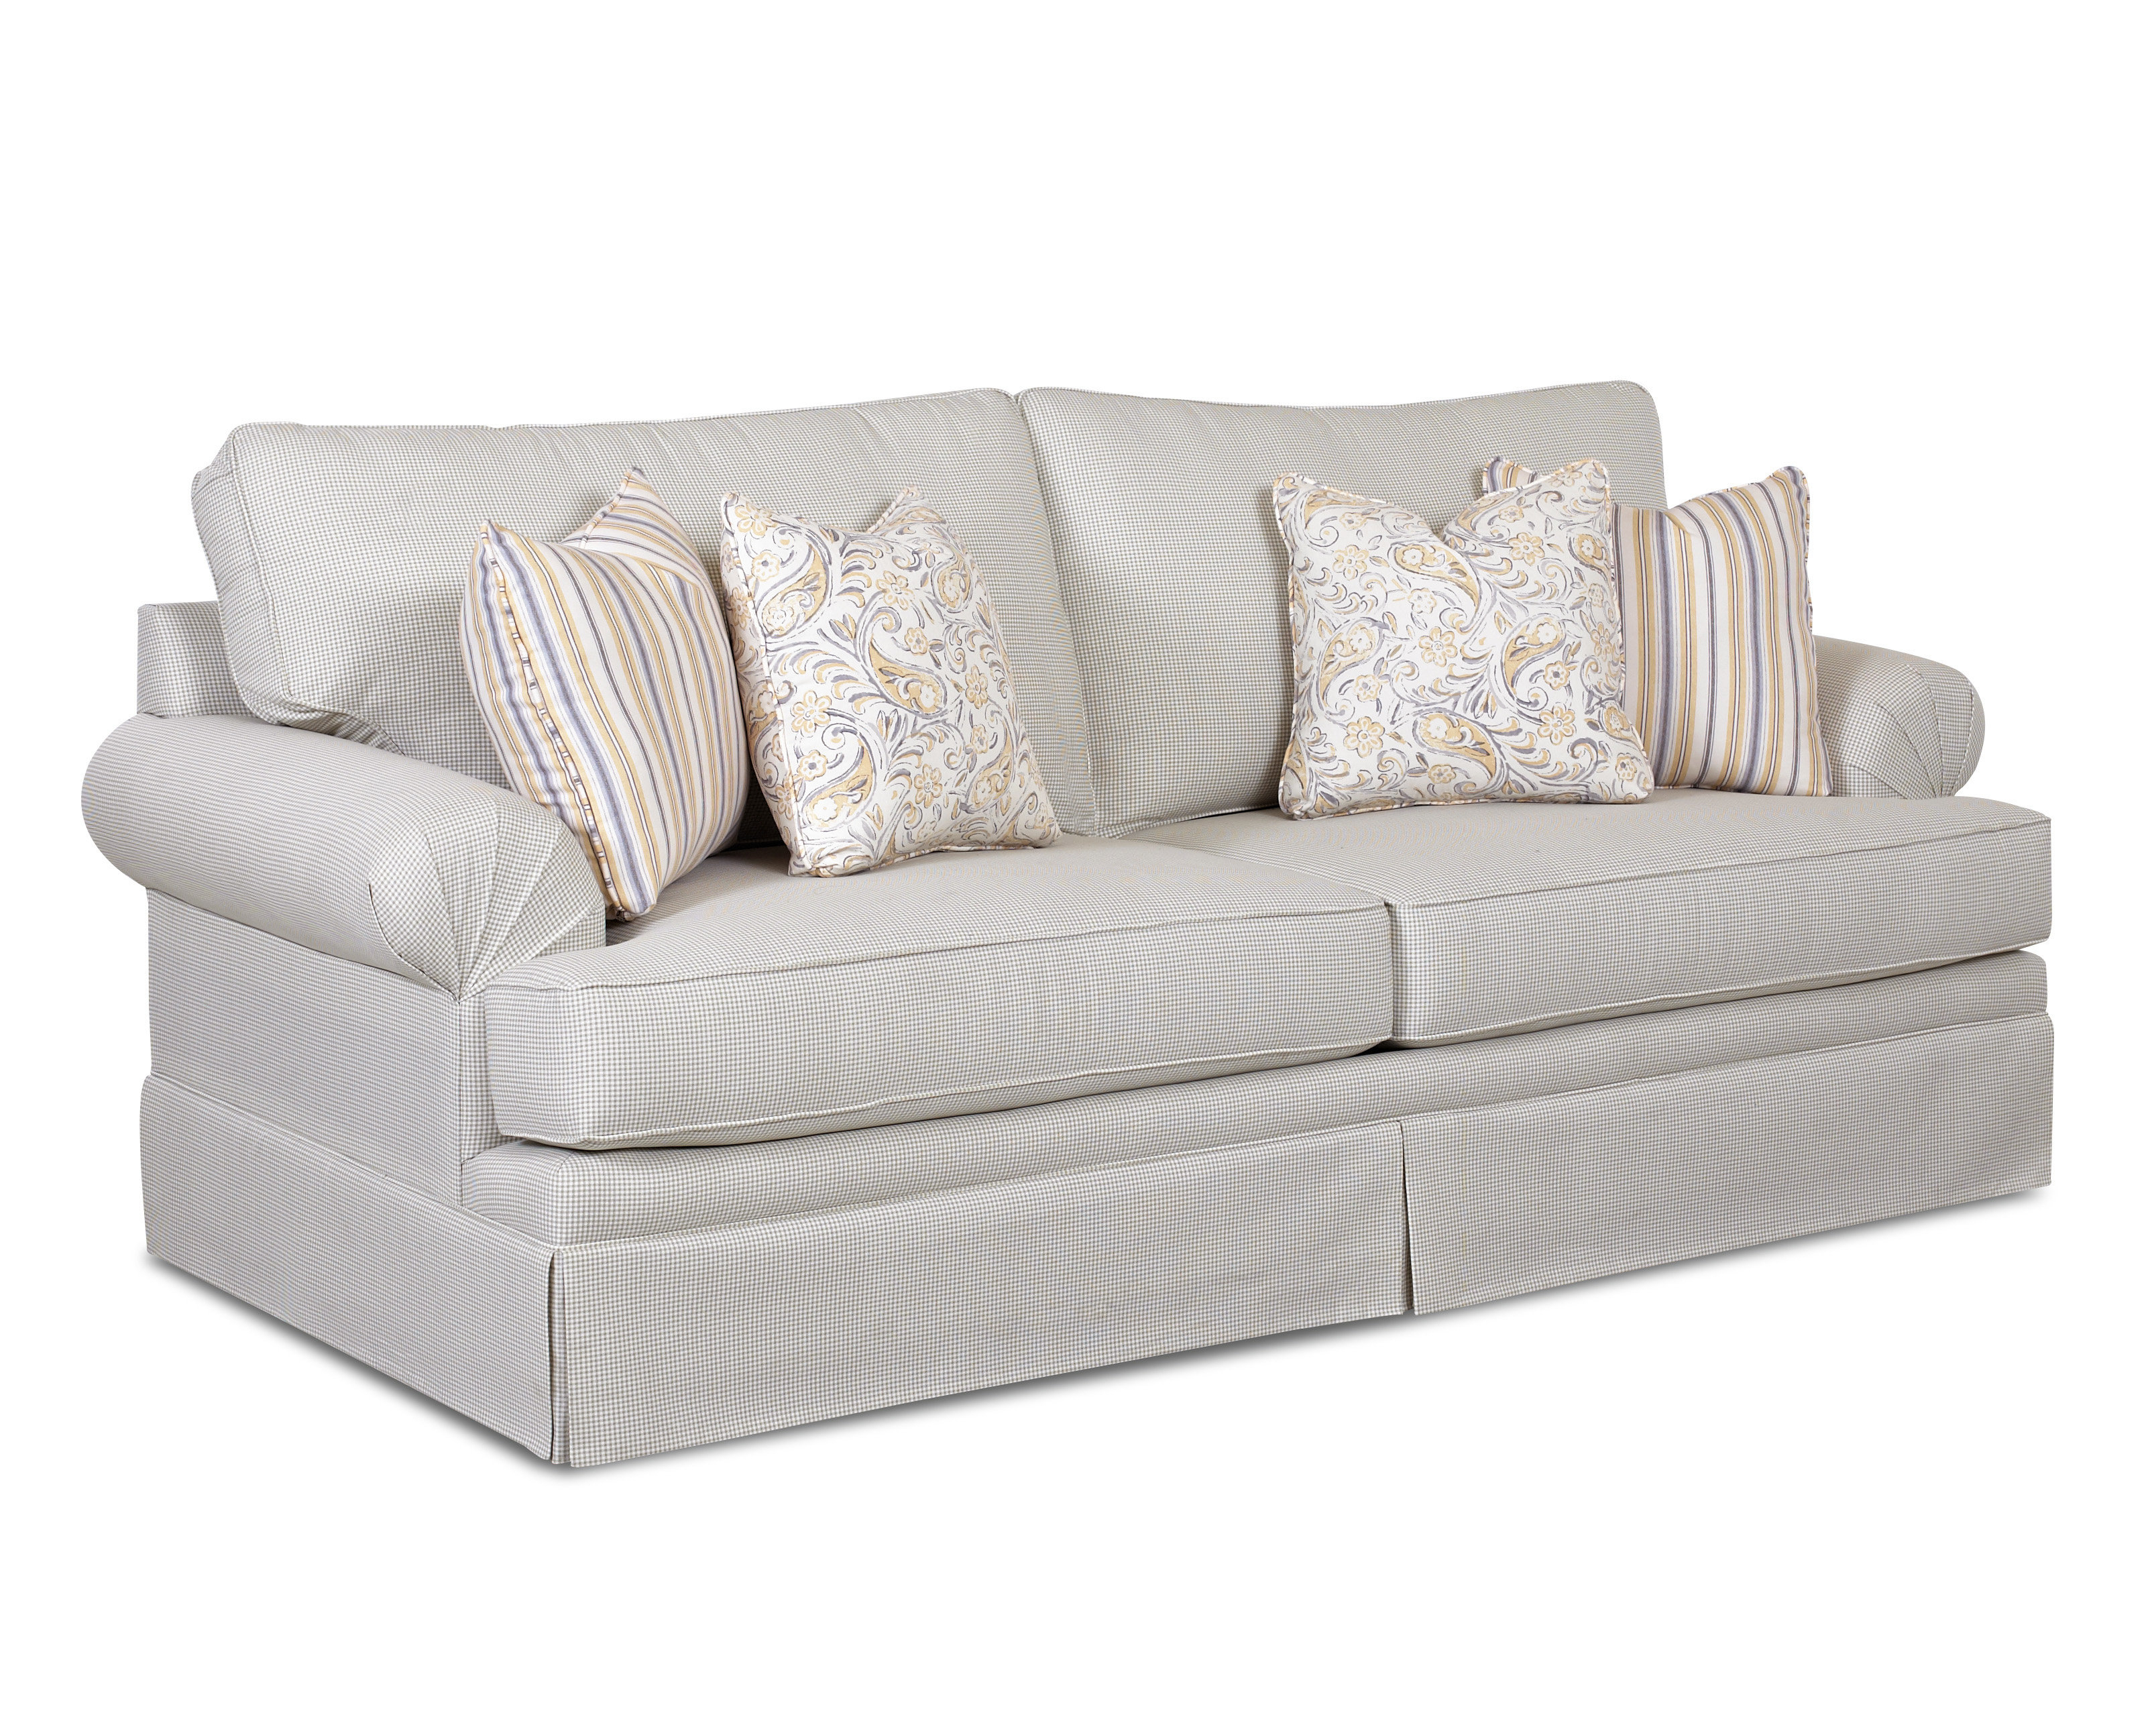 Klaussner Furniture Gale Sofa | Wayfair Intended For Bailey Roll Arm Skirted Swivel Gliders (View 21 of 25)